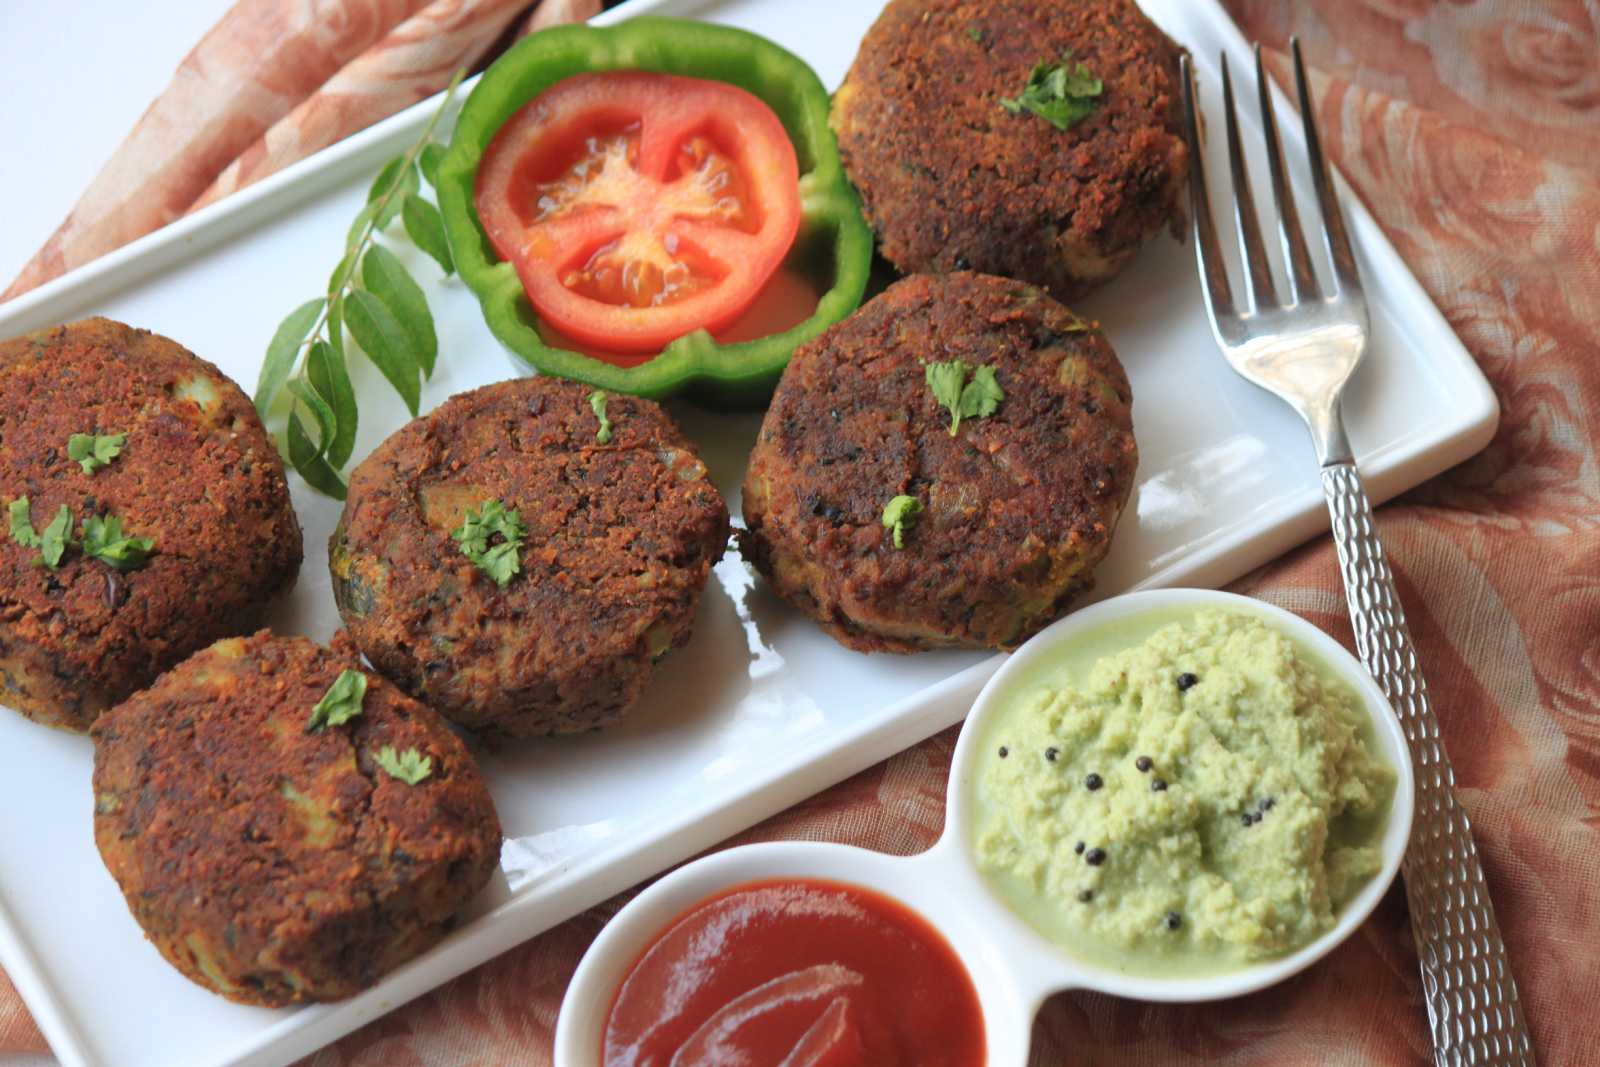 Horsegram Tikki Recipe